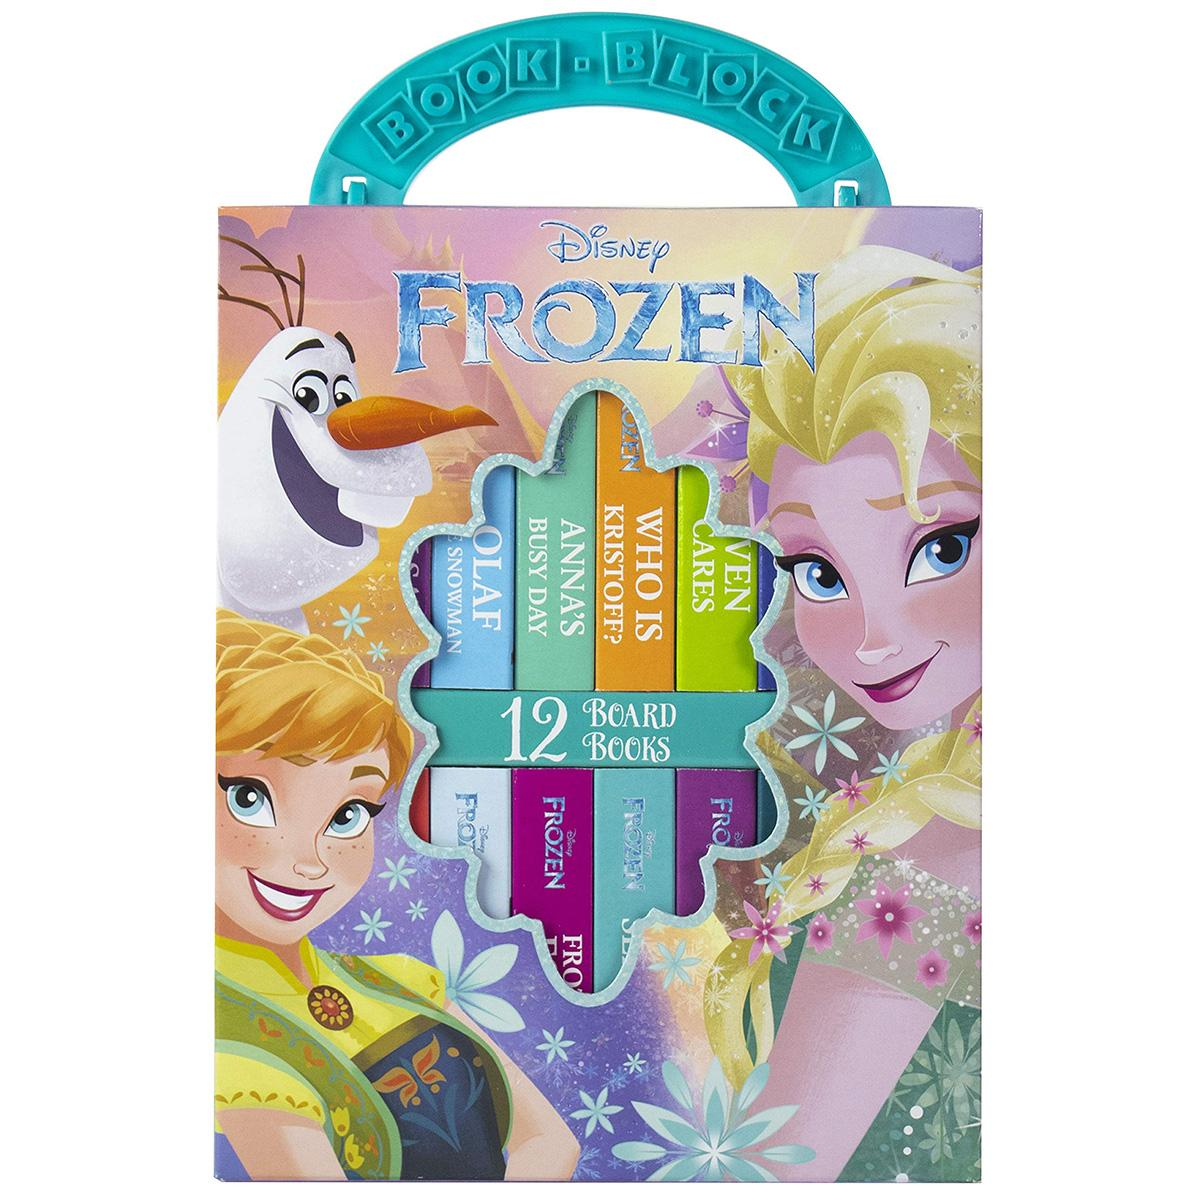 12-Book Set Disney Frozen My First Library Board Book Set for $5